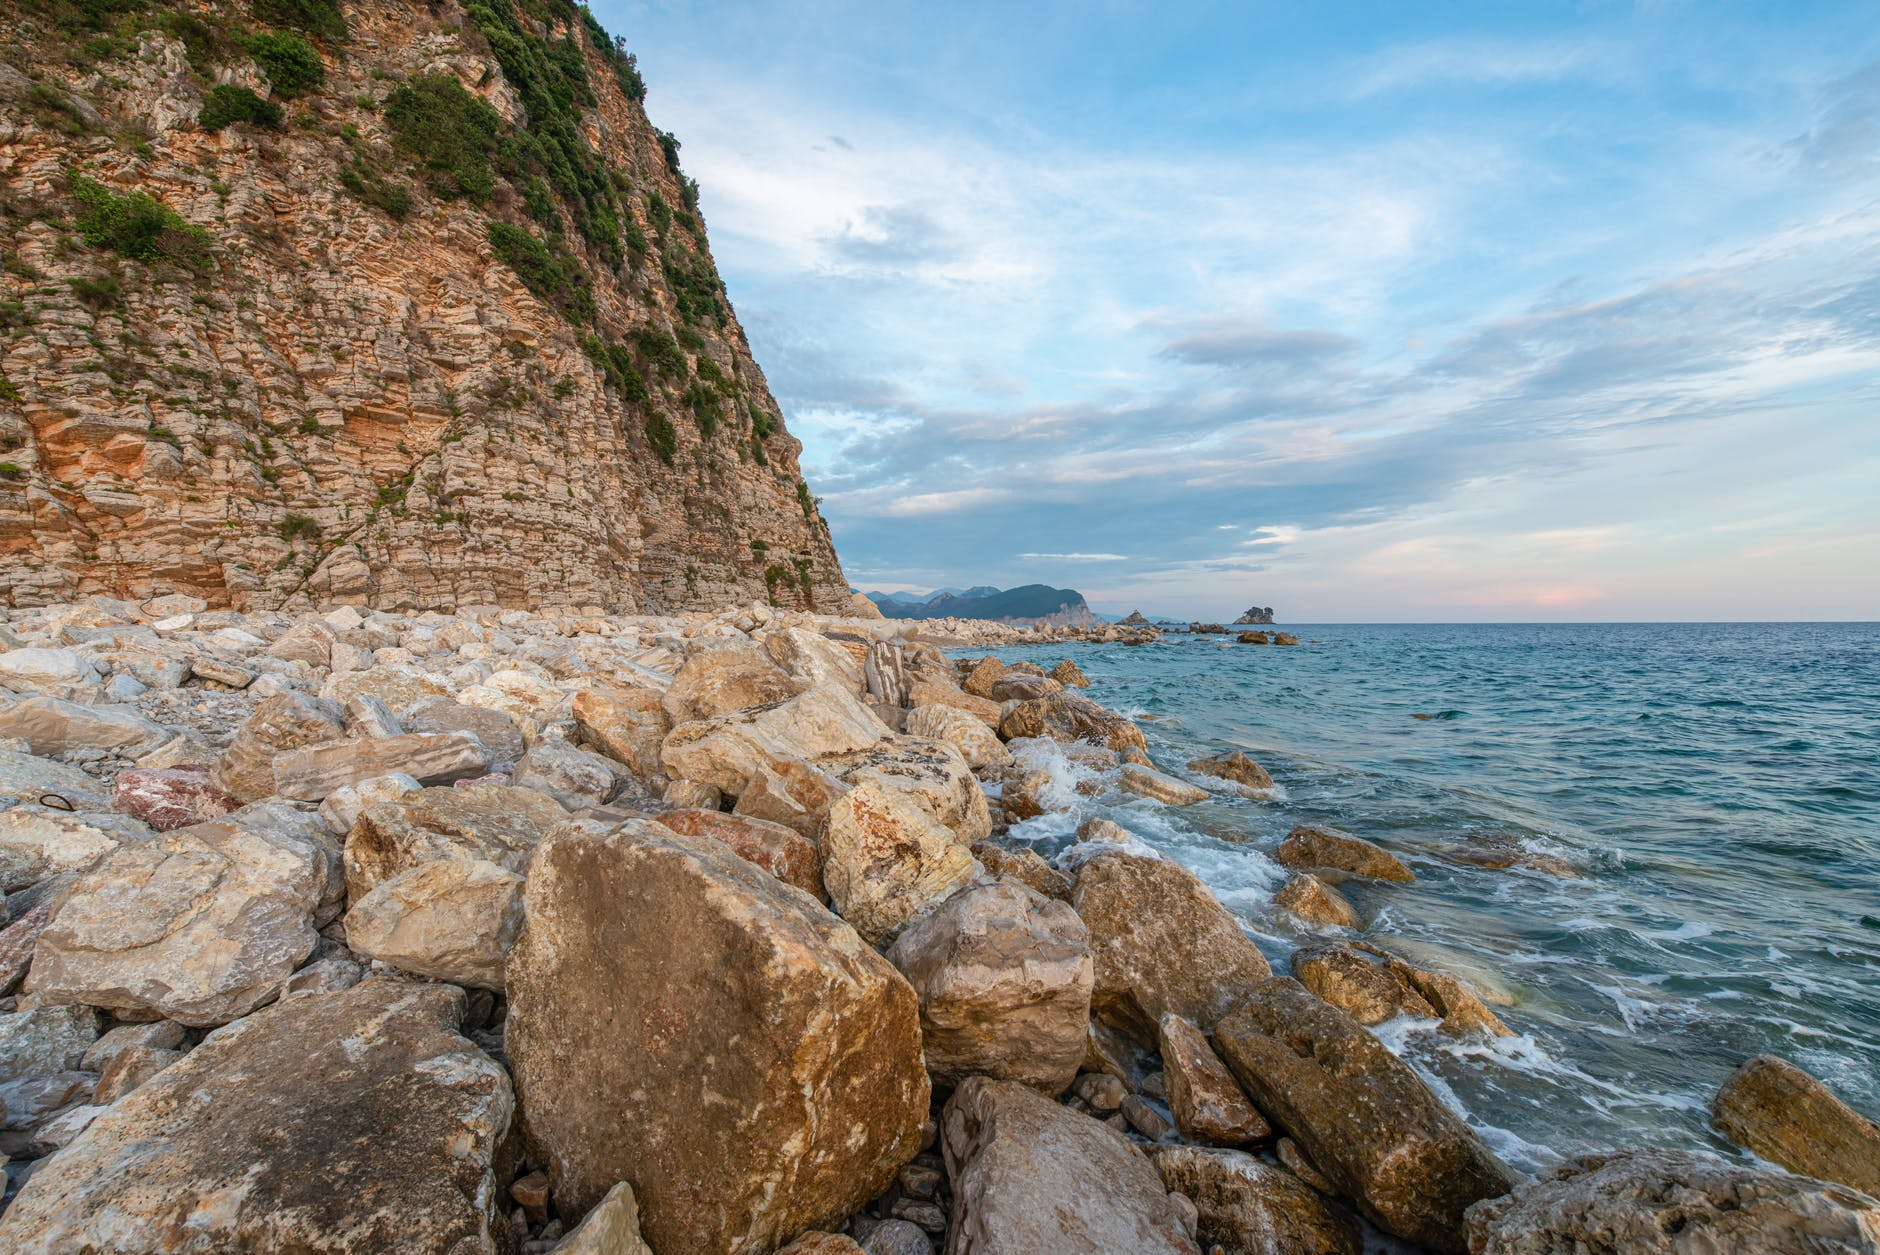 cliff surrounded with heavy rough stones washed by ocean